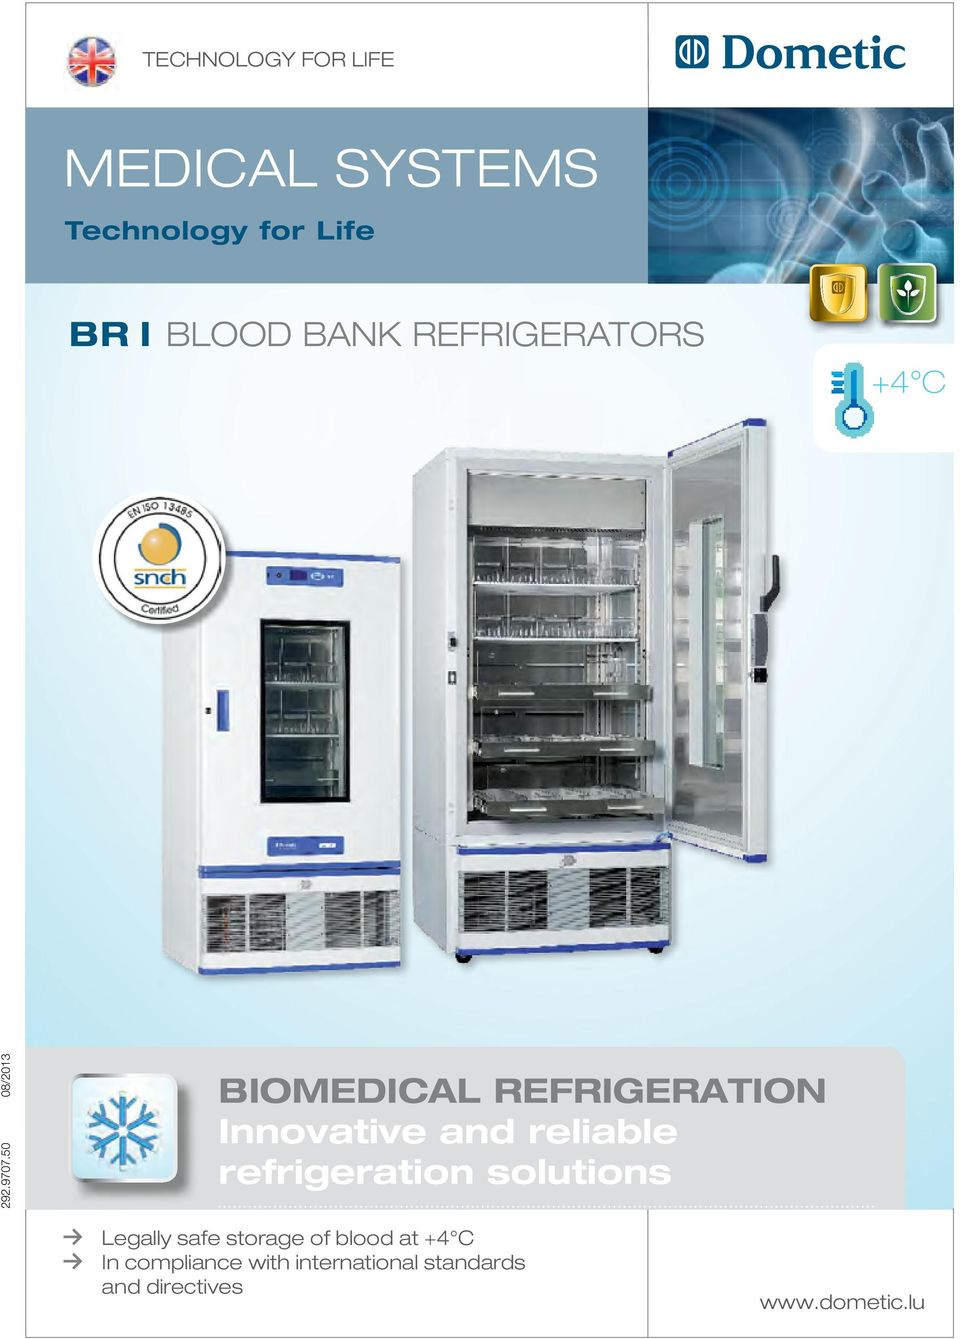 Refrigerators, Freezers and Ice Liners Absorption Refrigerators and Freezers Vaccine Transport